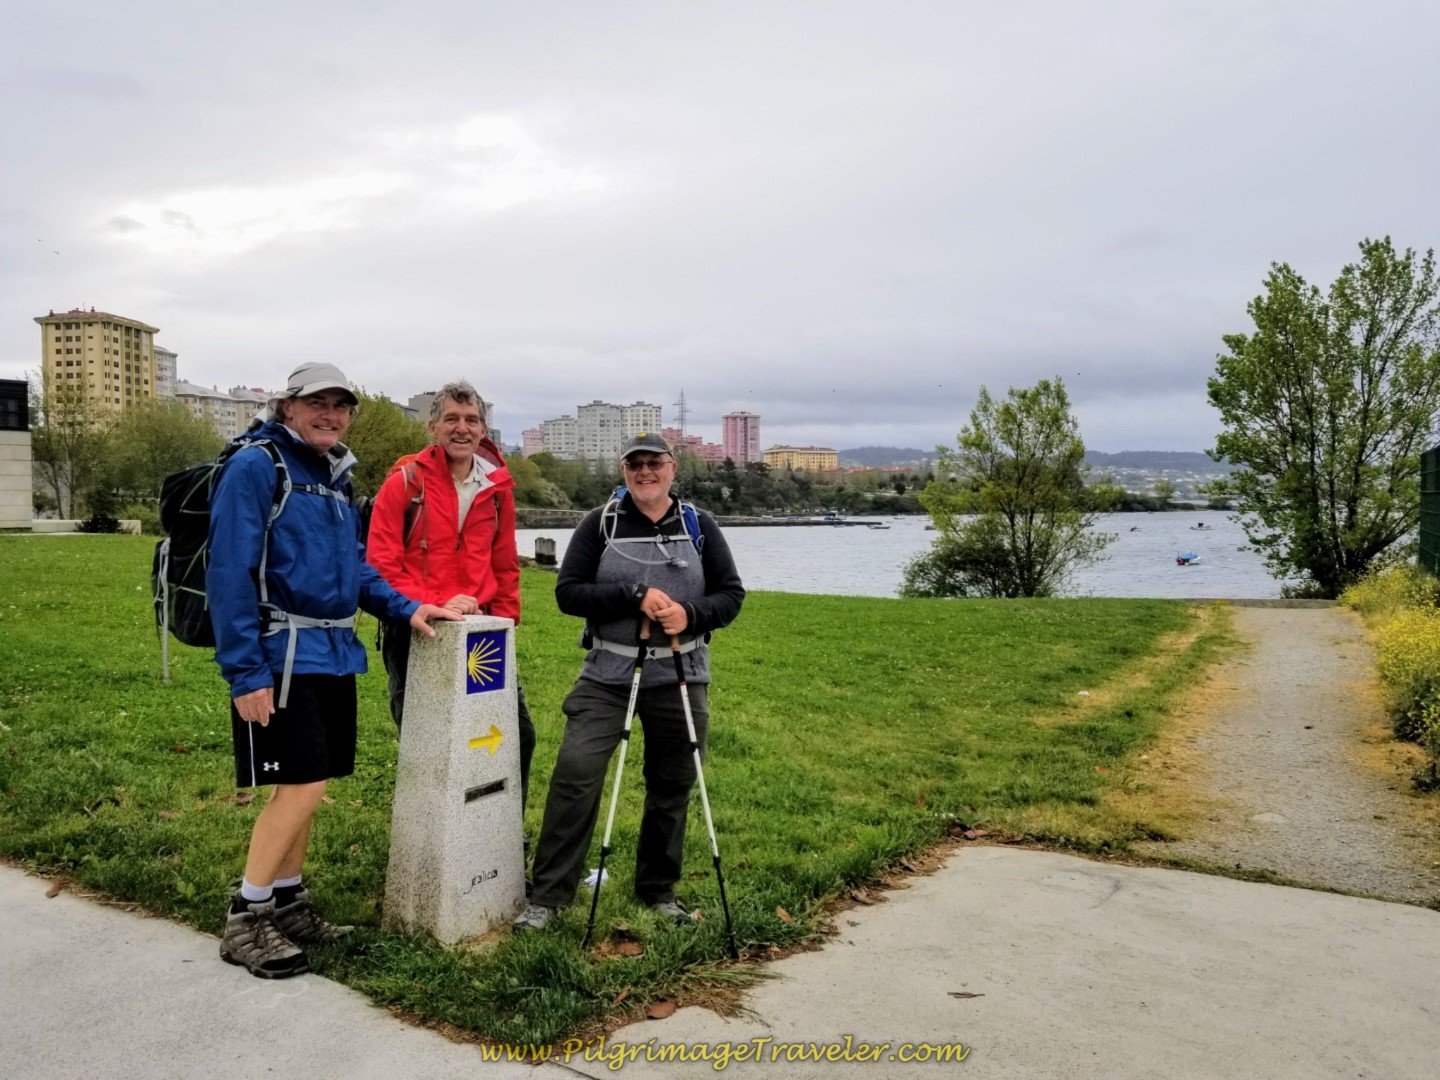 Rob, Rich and Steve at the Right Turn Onto Waterfront Pathway on day one of the Camino Inglés